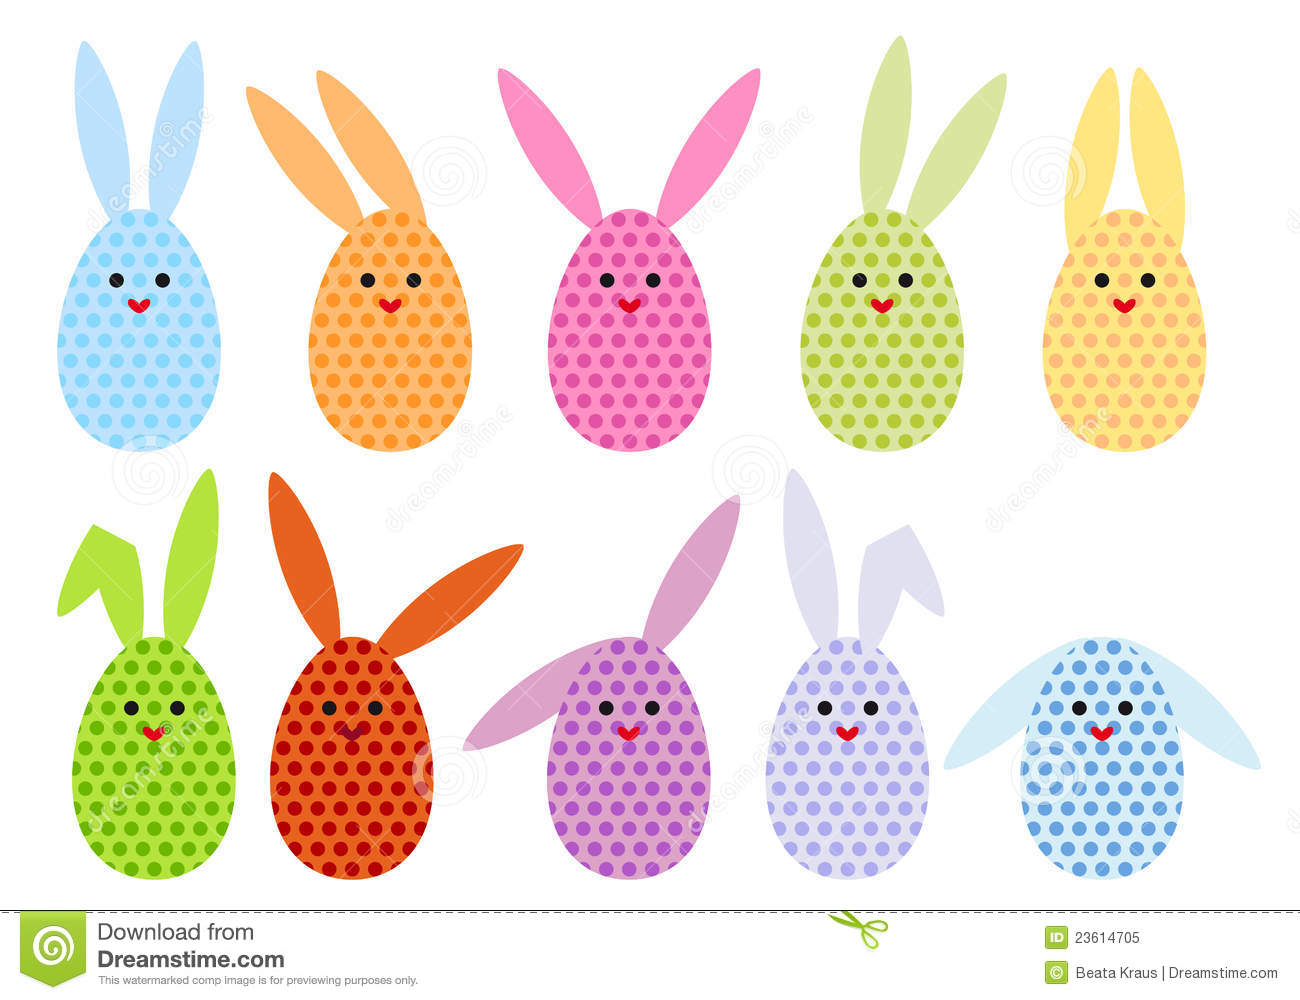 Easter Egg Bunnies, Vector Royalty Free Stock Photo - Image: 23614705